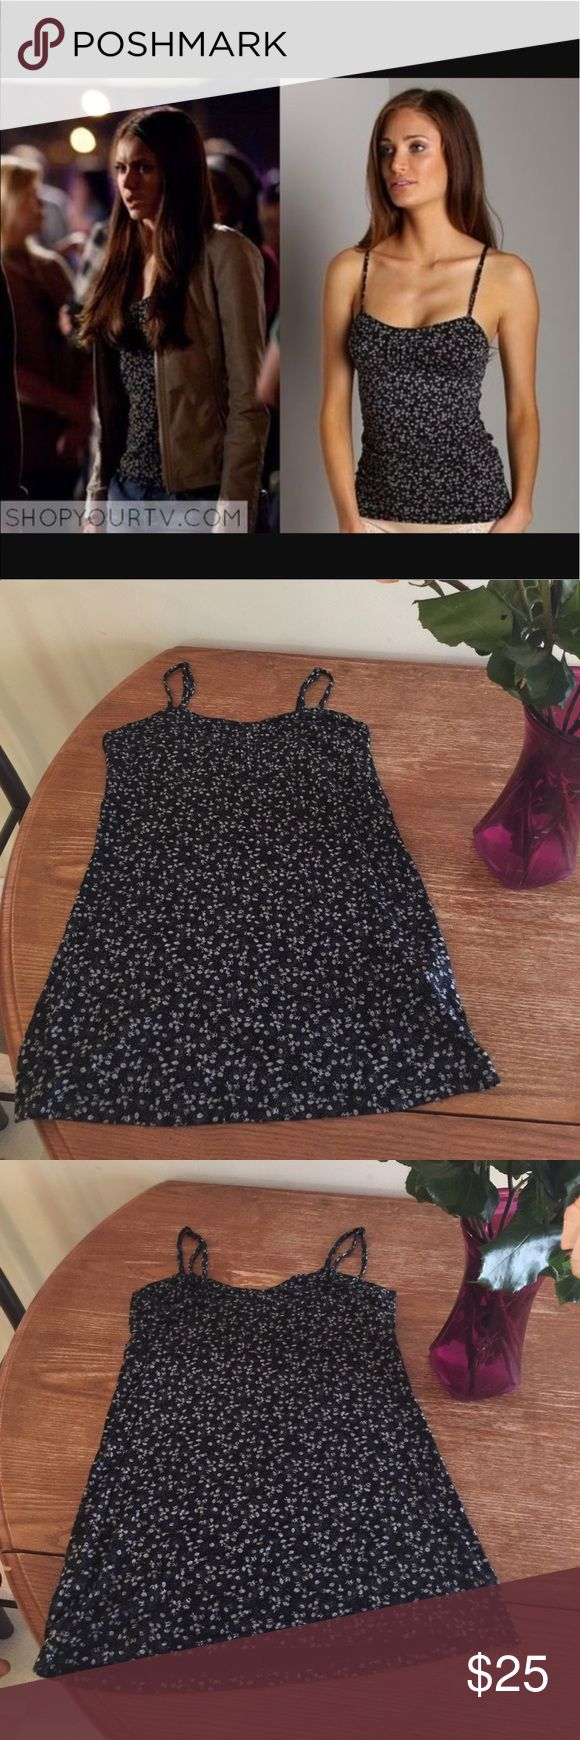 Elena Gilbert Free People Ditsy Floral Cami M Re Posh. Great condition. As seen on Elena Gilbert from The Vampire Diaries. Free People Tops Tank Tops